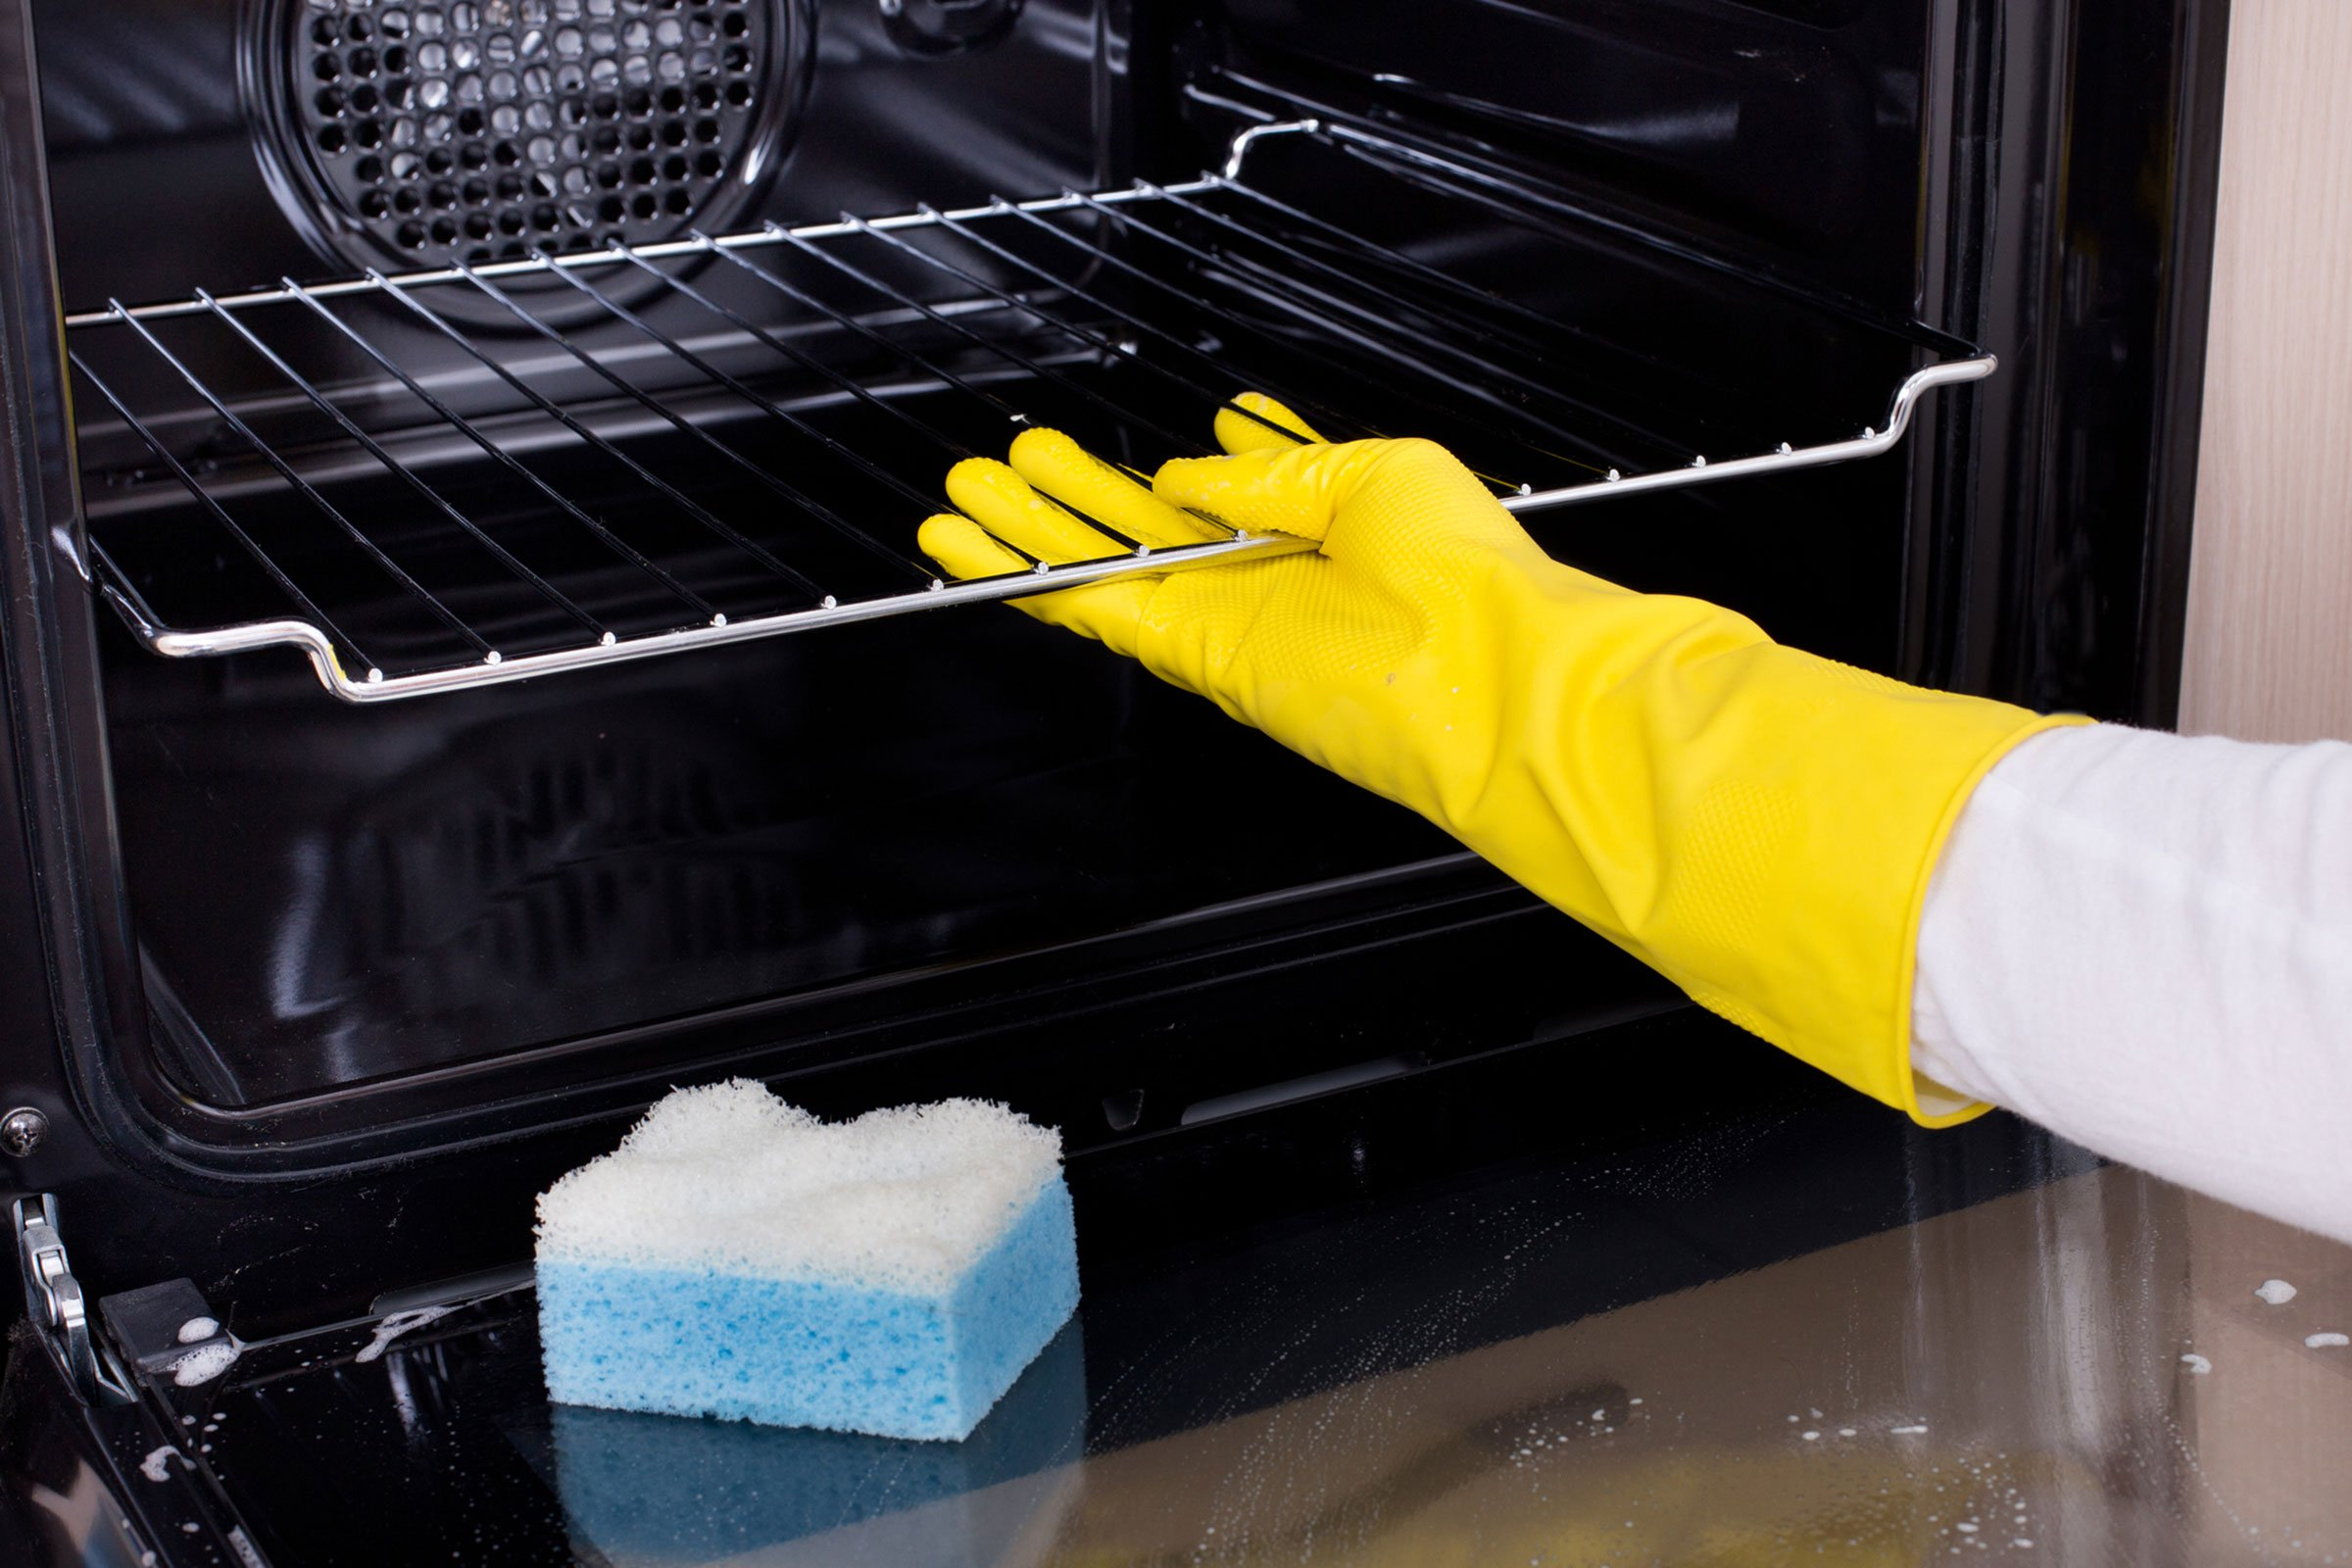 04 remove things to know before self clean oven 518198622 Jevtic